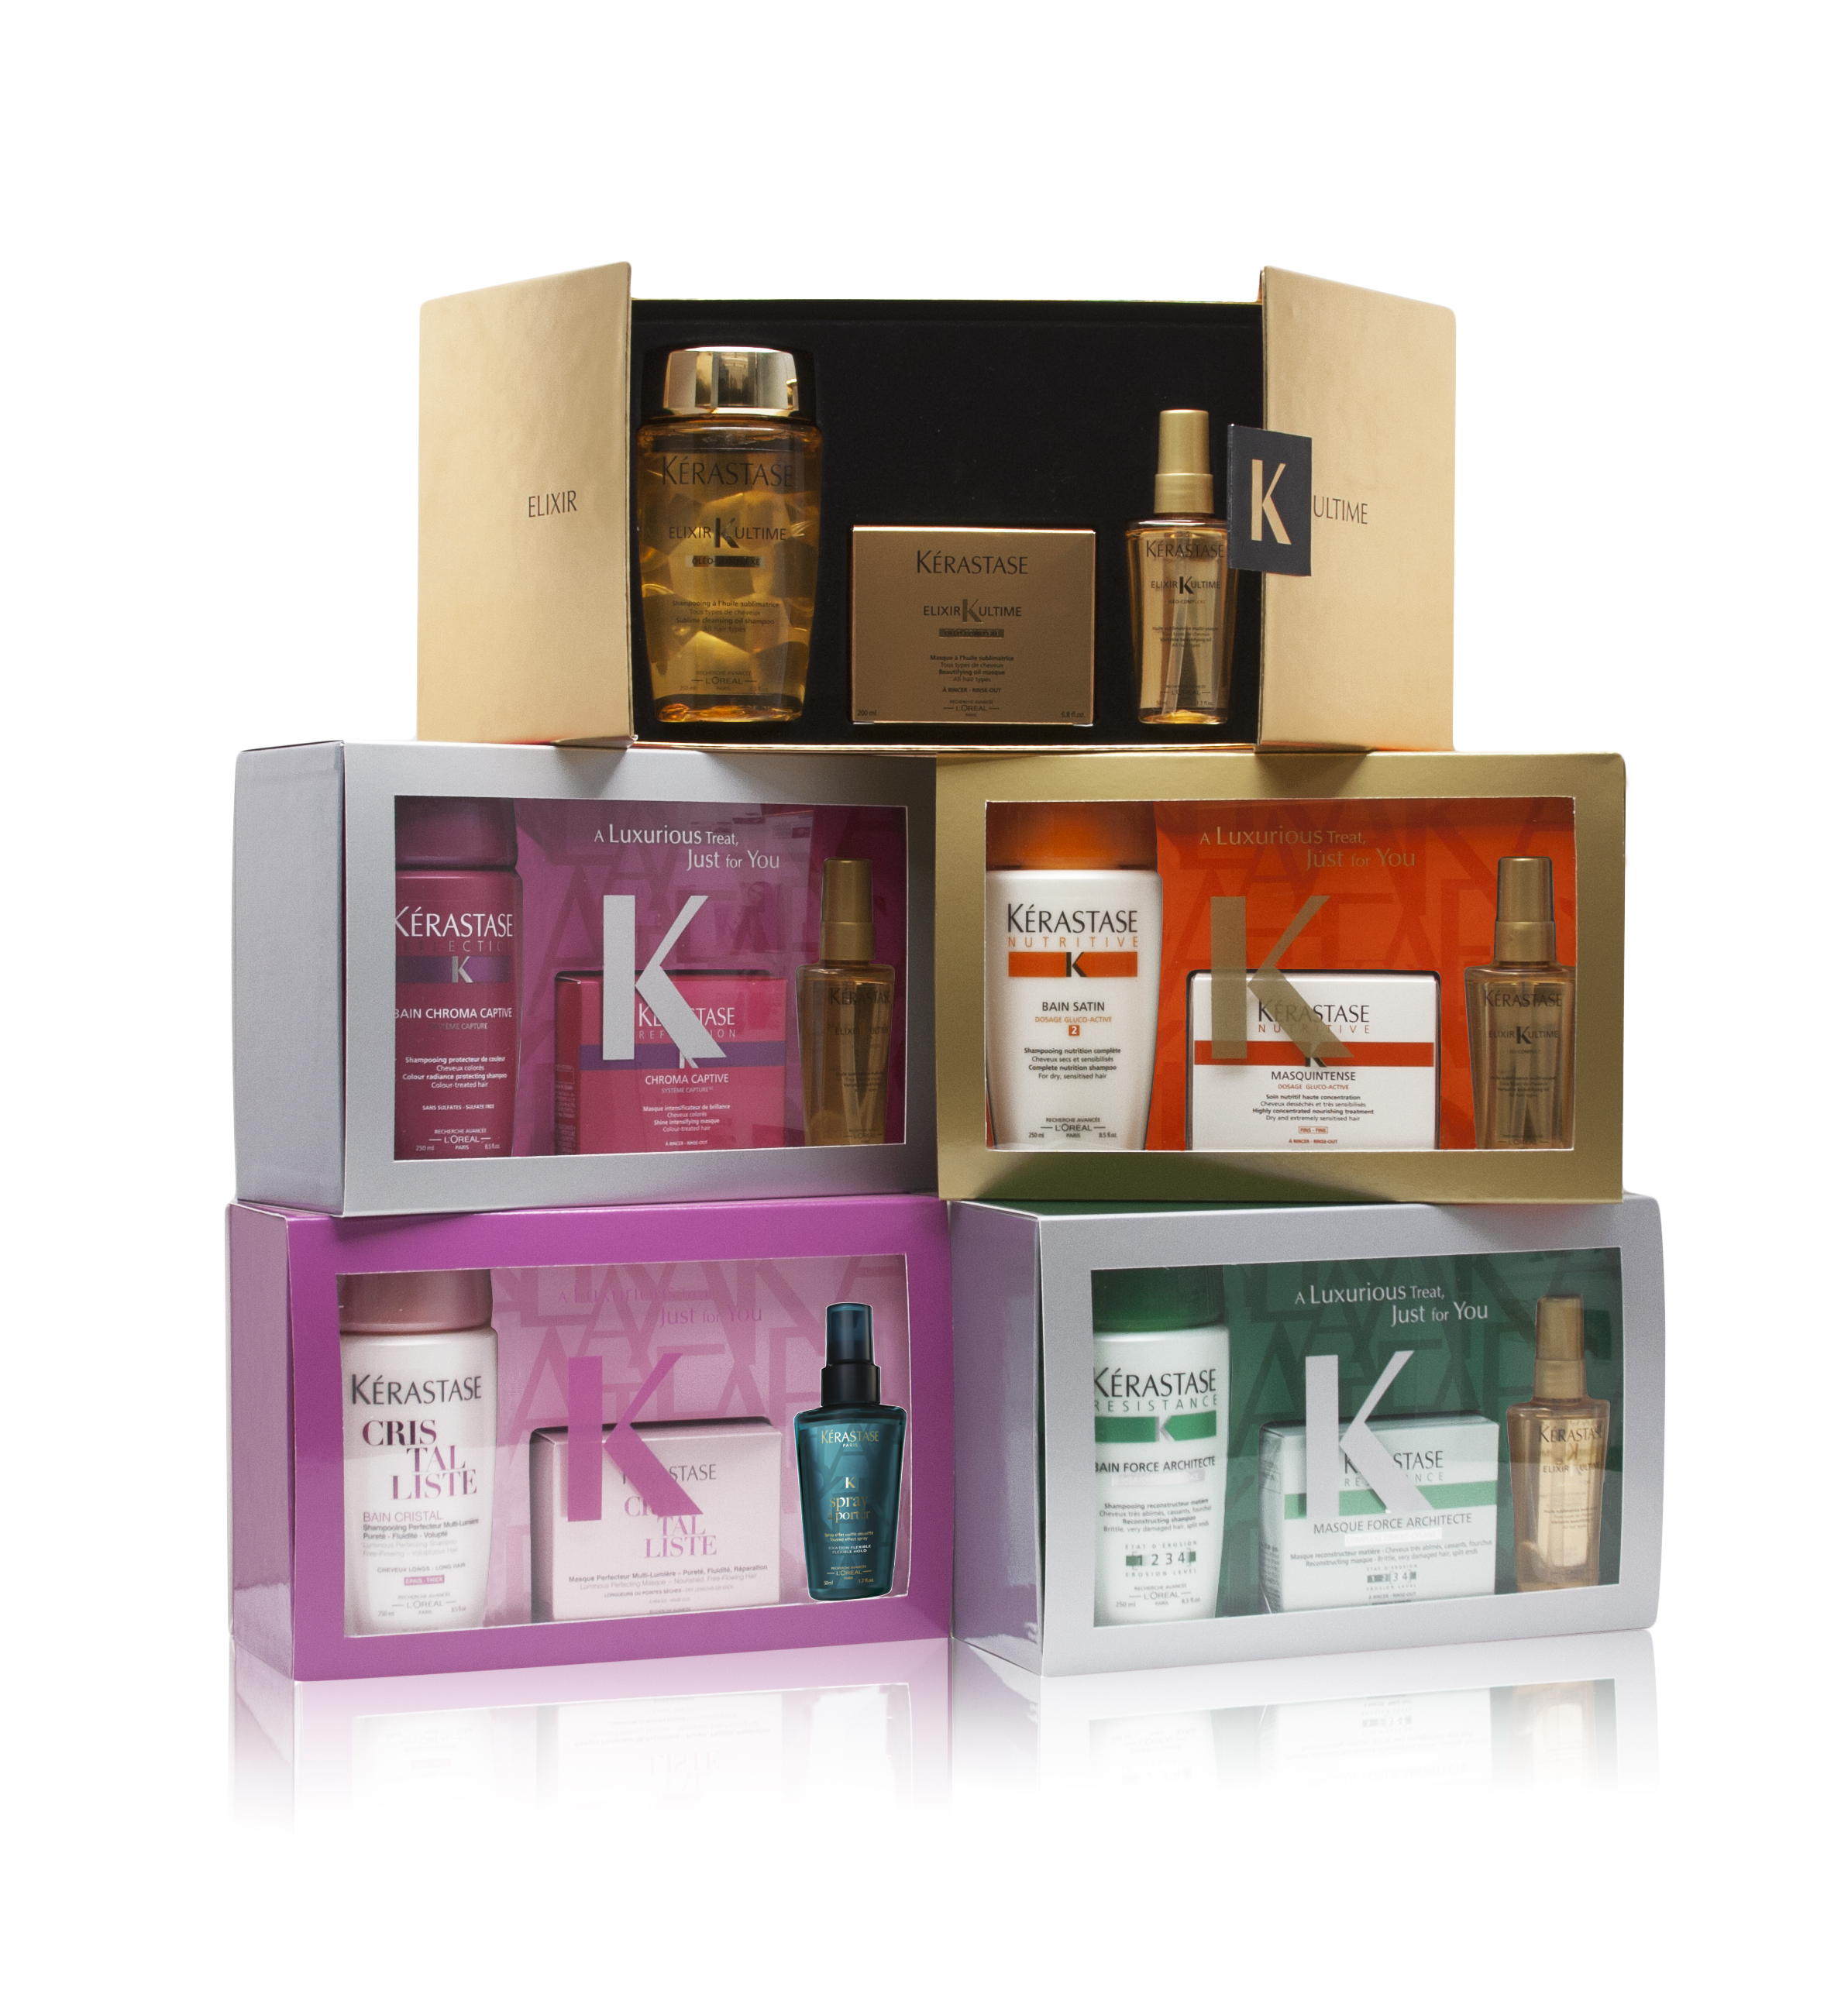 Kérastase Holiday Gift Sets